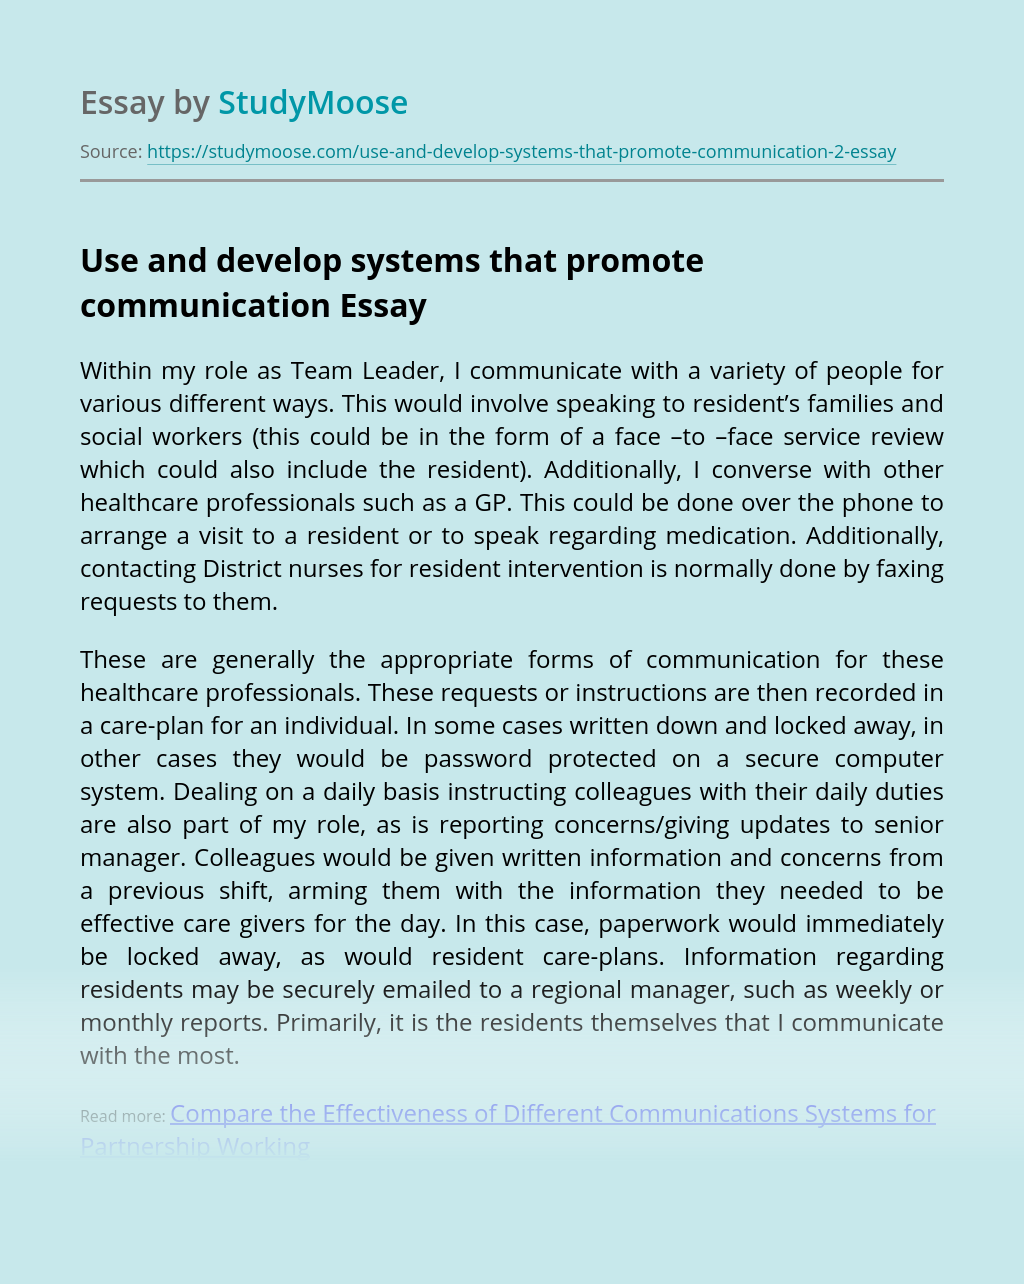 Use and develop systems that promote communication